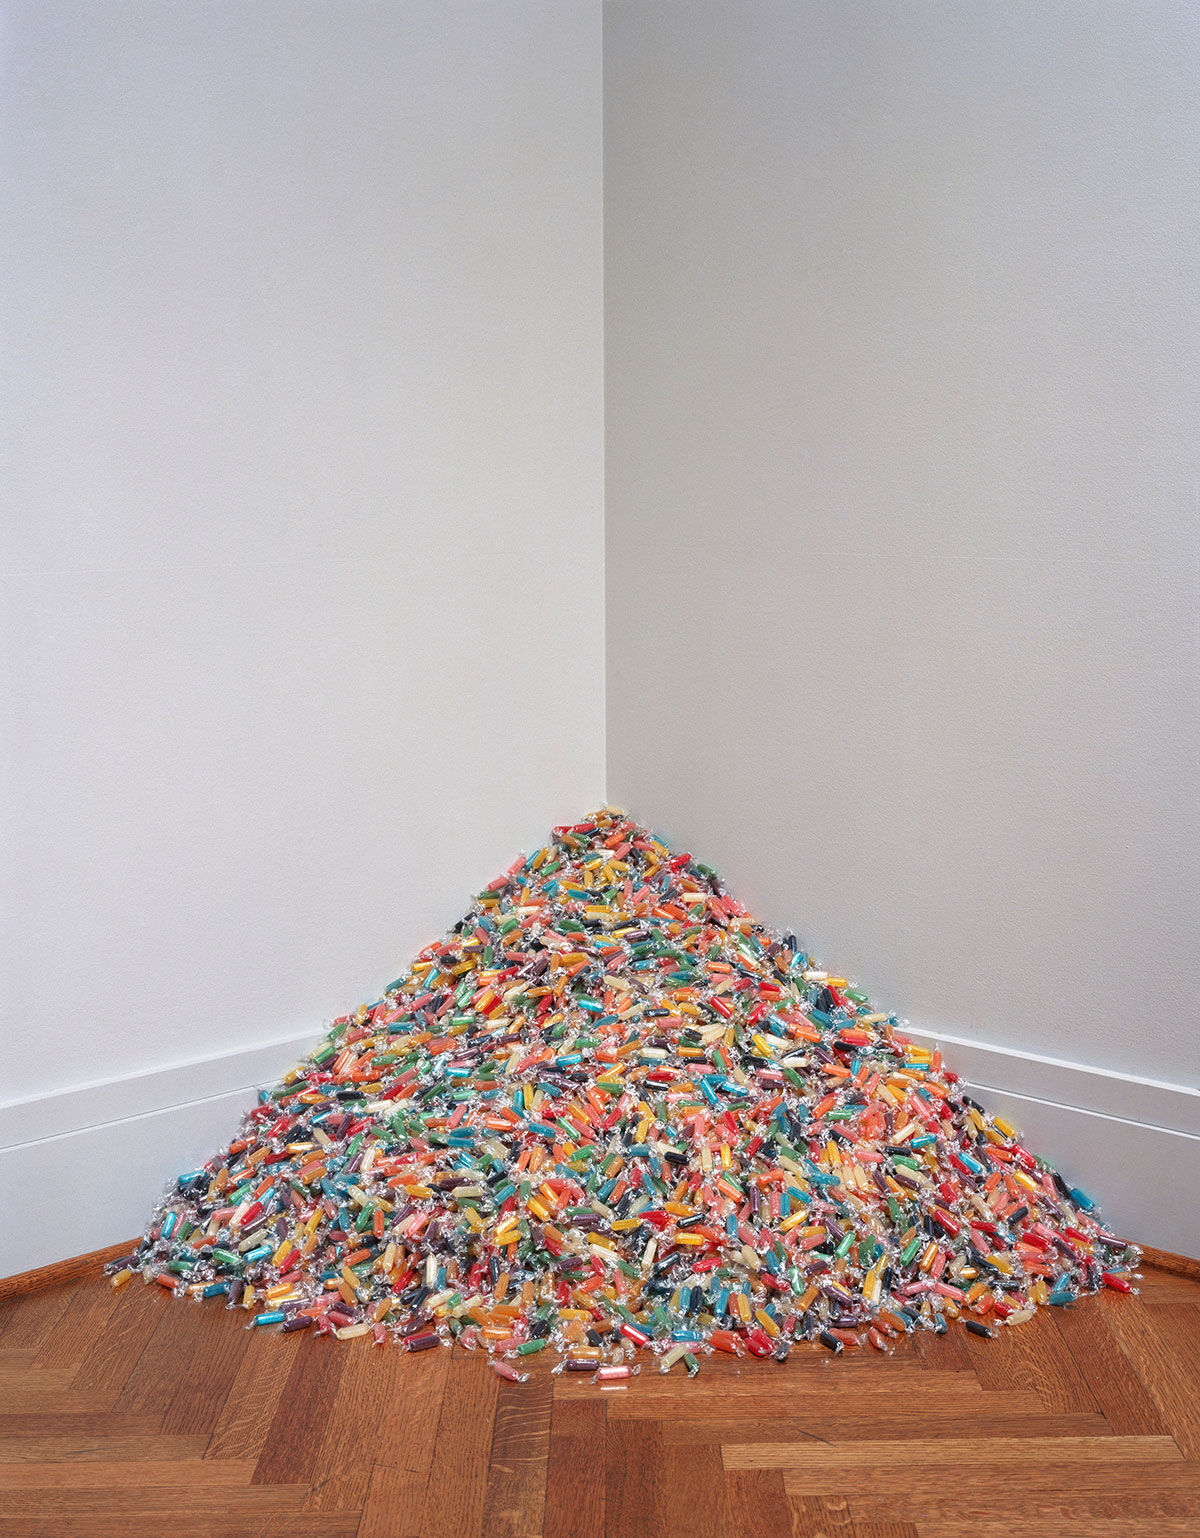 "Felix Gonzalez-Torres, ""Untitled"", 1992. Candies individually wrapped in variously colored cellophane, endless supply. Overall dimensions vary with installation. Original size: 2 x 48 x 48 in. Installation view: A Day Without Art. St. Louis Art Museum, St. Louis, MO. 29 Nov. – 3 Dec. 2002. Photographer: Robert Pettus. © The Felix Gonzalez-Torres Foundation. Courtesy of Andrea Rosen Gallery, New York."